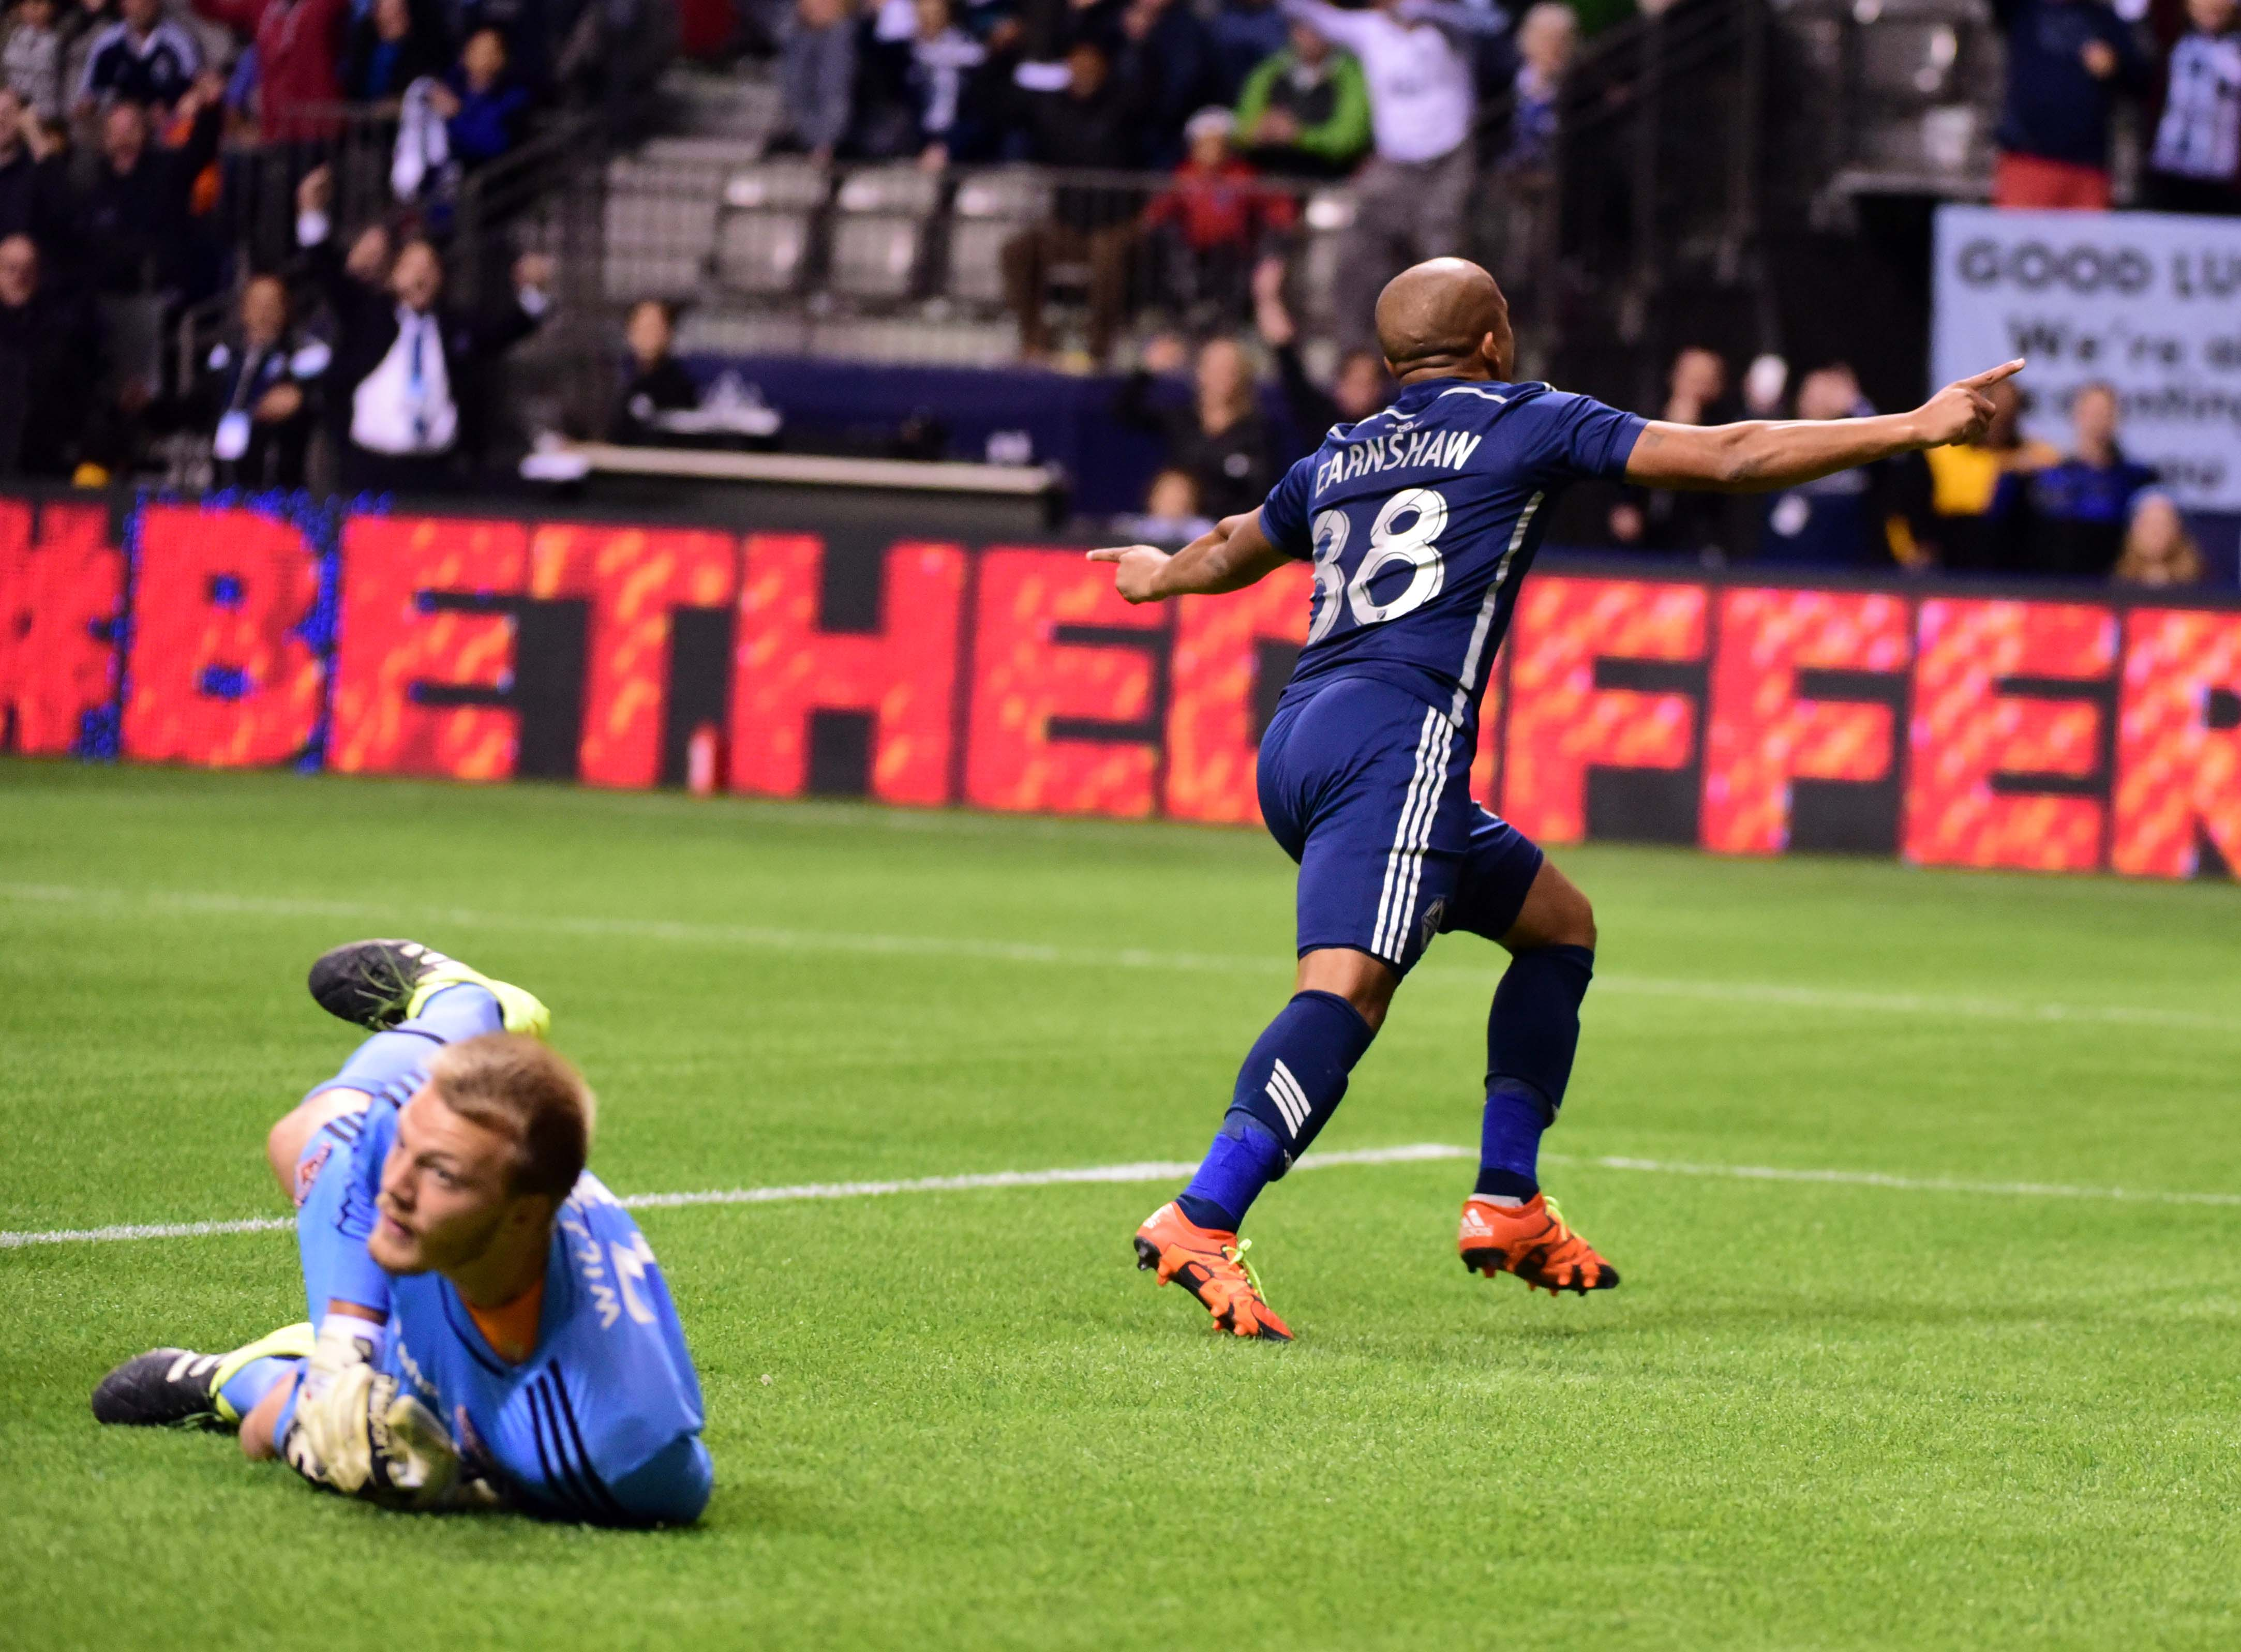 Robert Earnshaw (right) split the defense and headed in the final goal of the Whitecaps' 3-0 domination of the Dynamo.